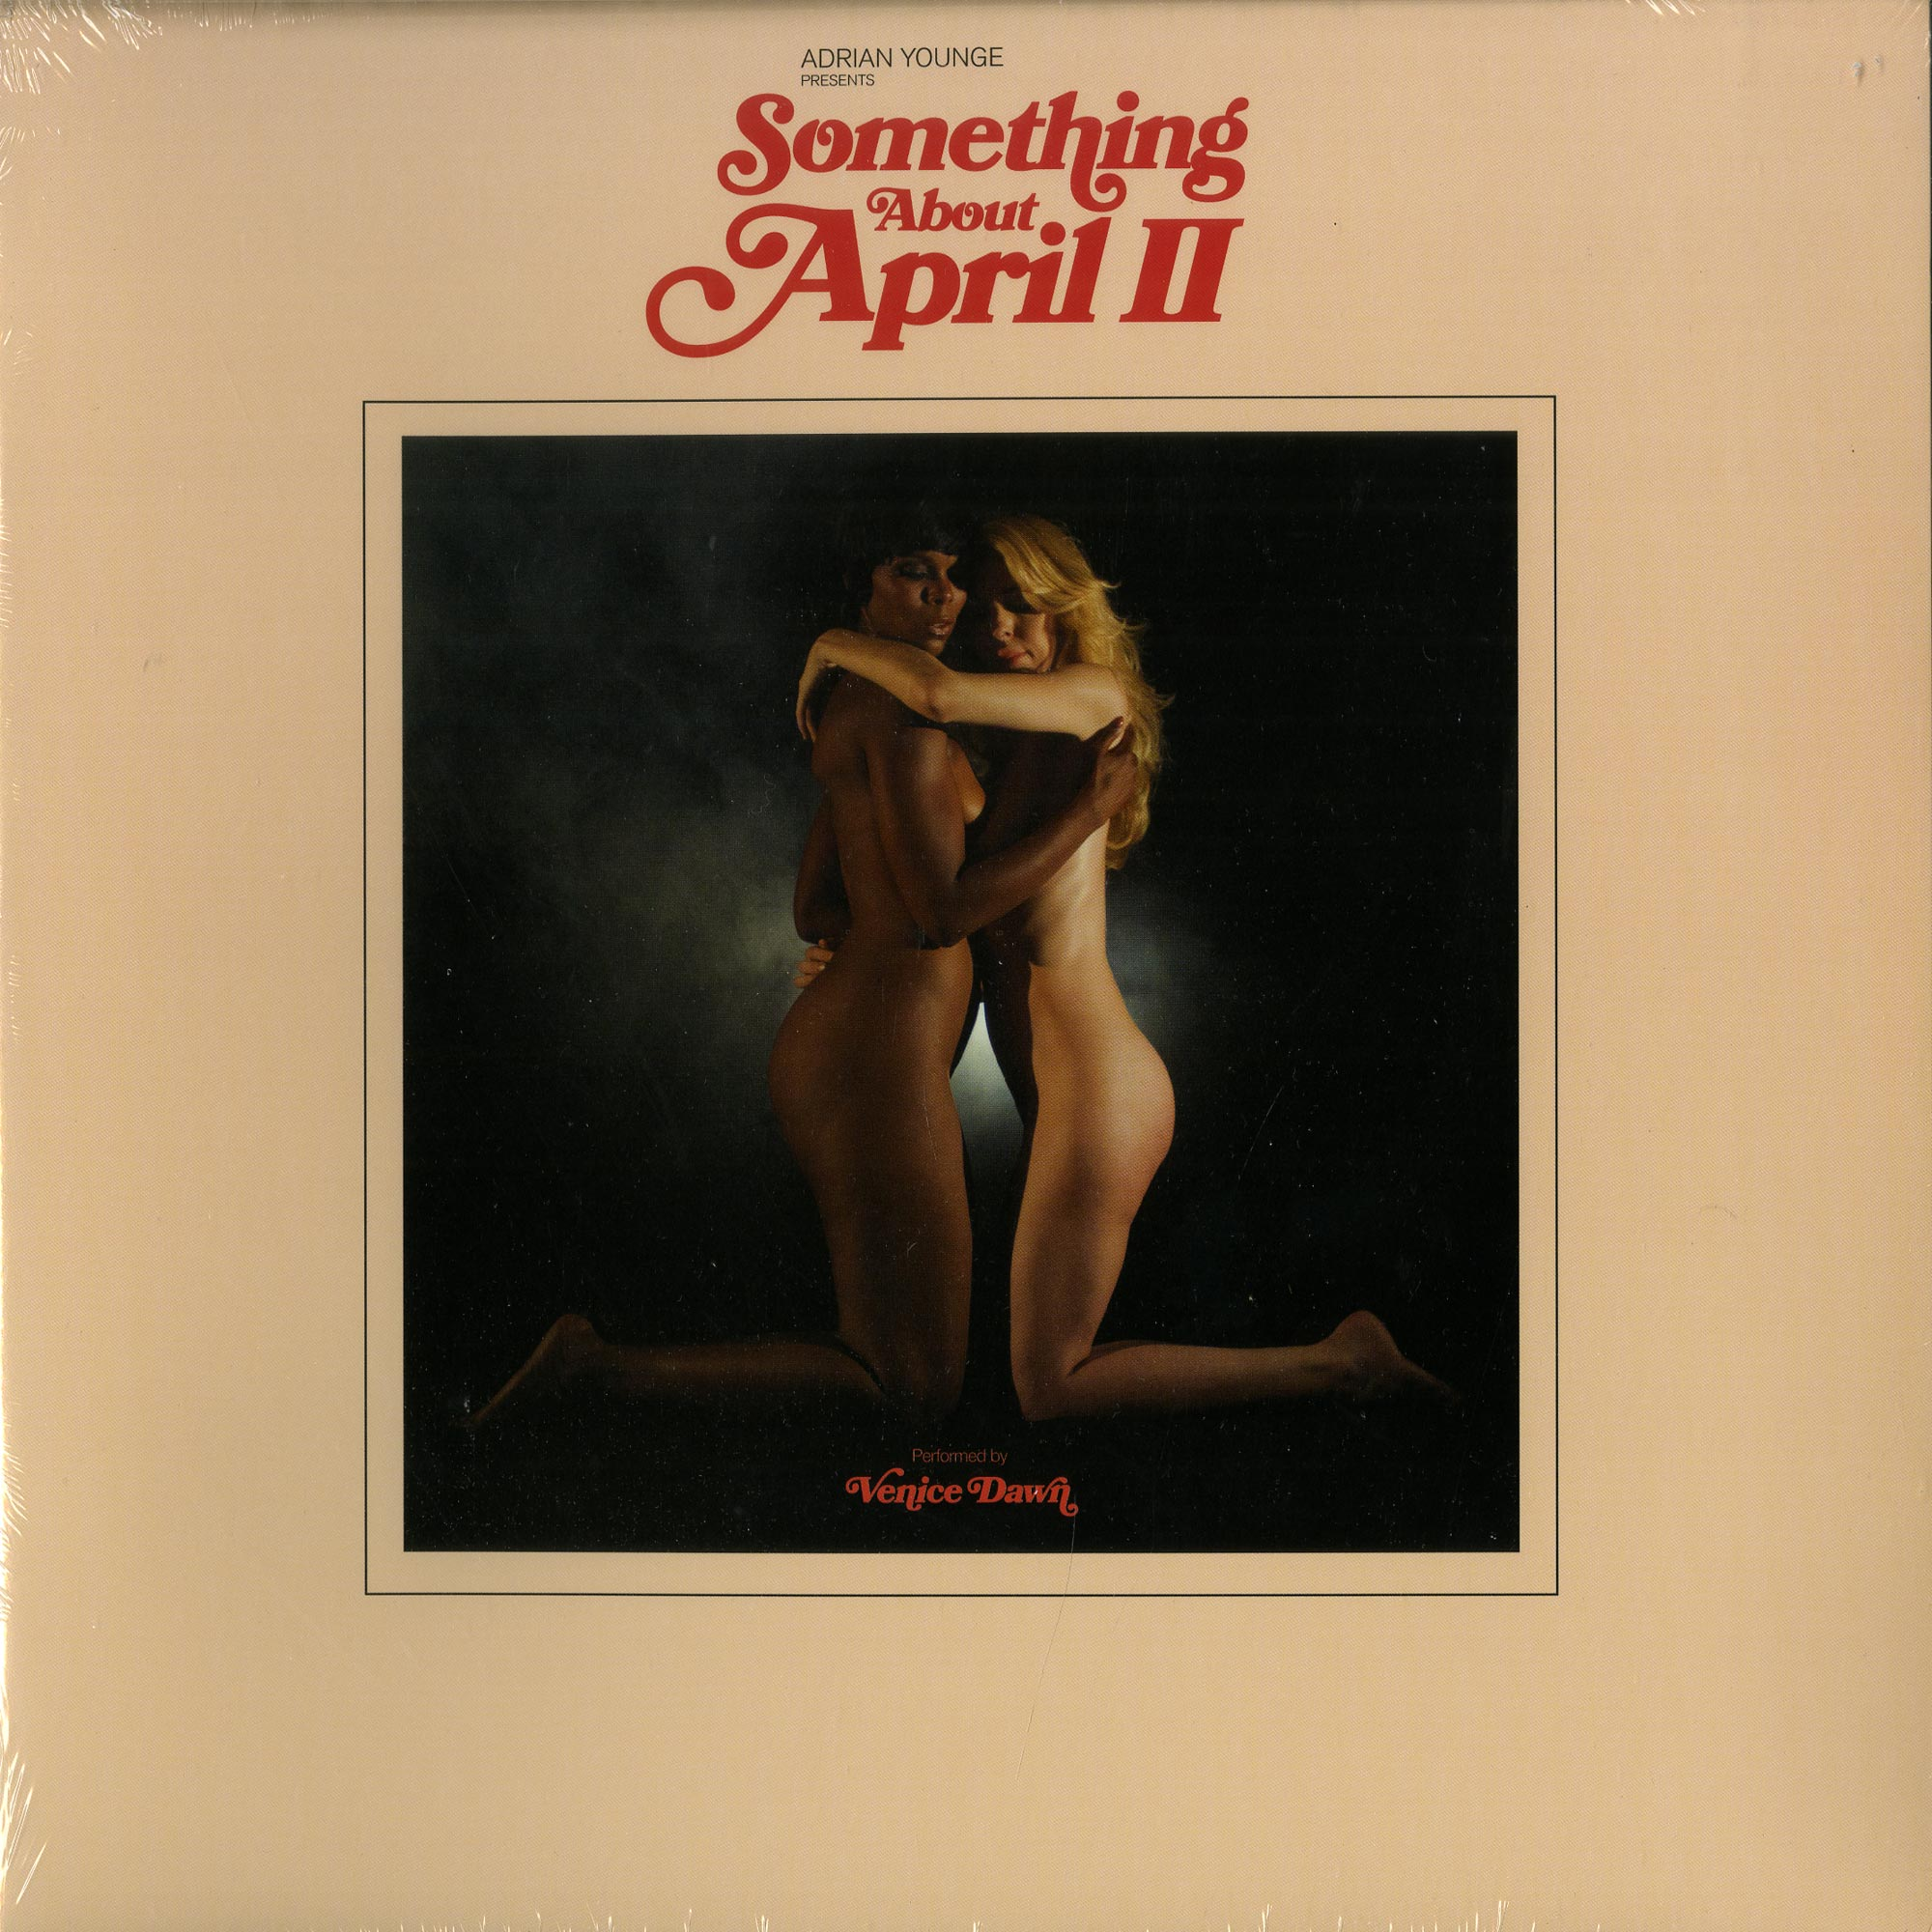 Adrian Younge pres. Venice Dawn - SOMETHING ABOUT APRIL II